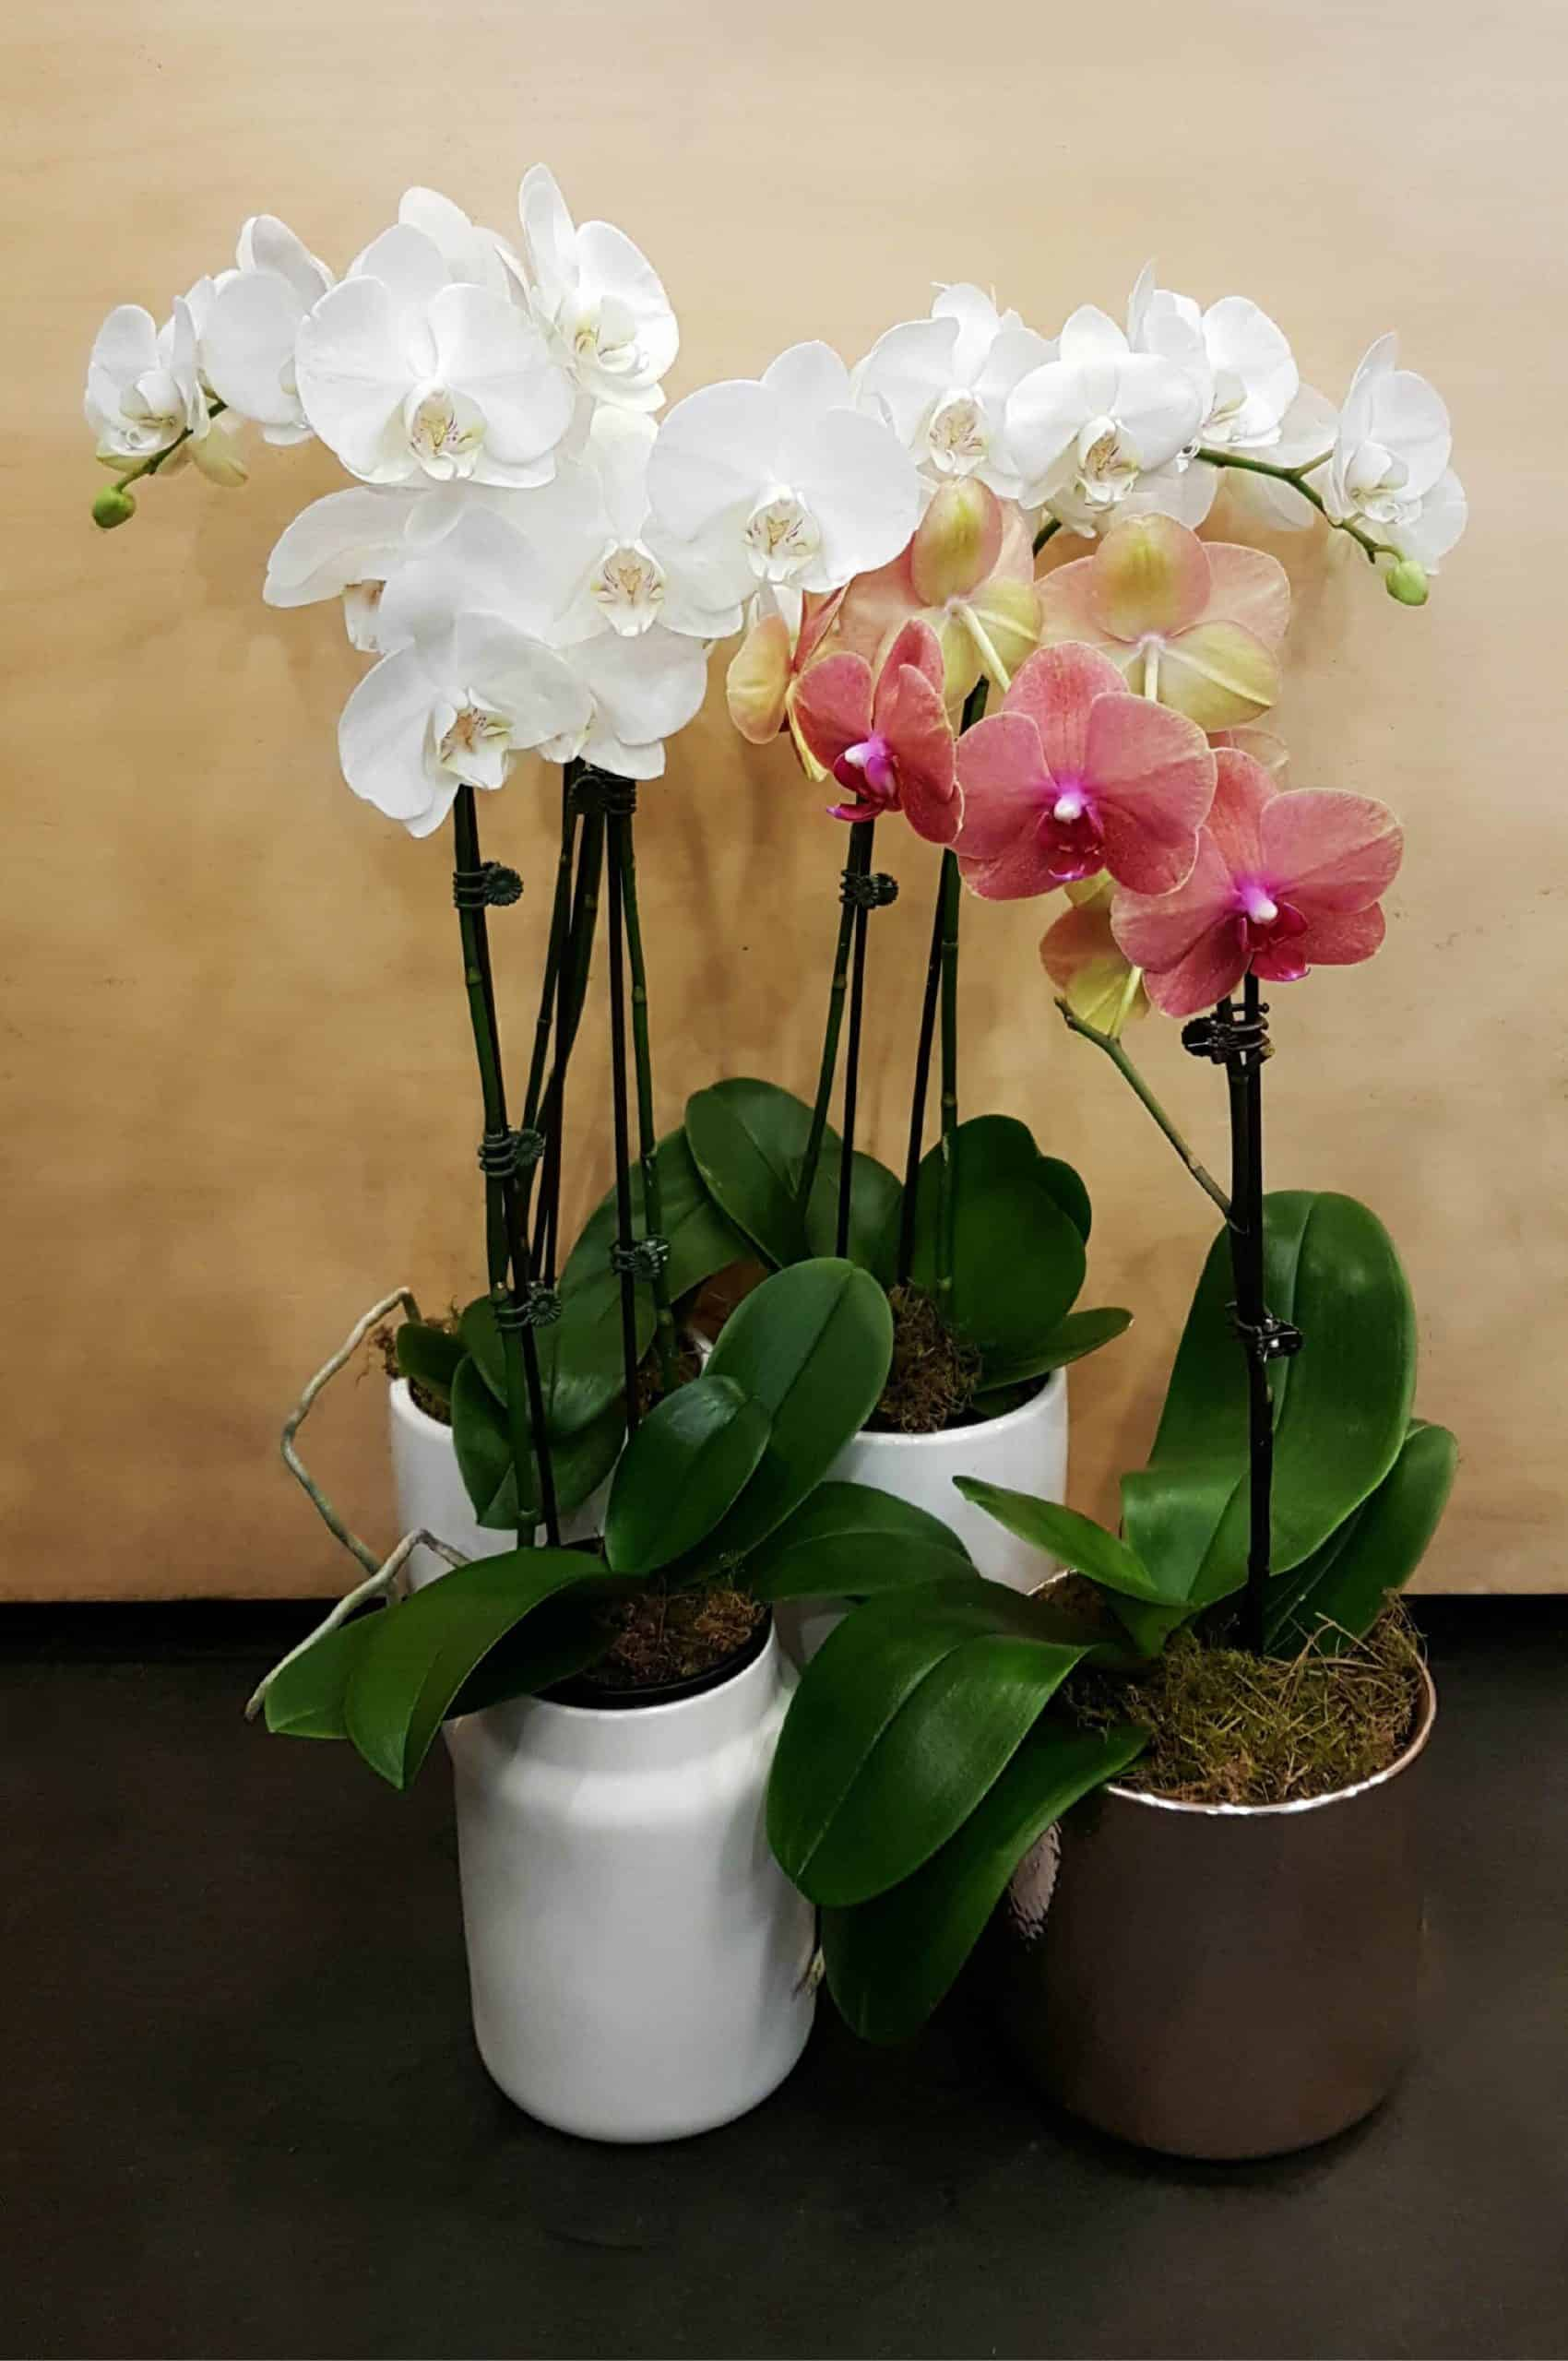 Phalaenopsis Orchid Propagation Requirements